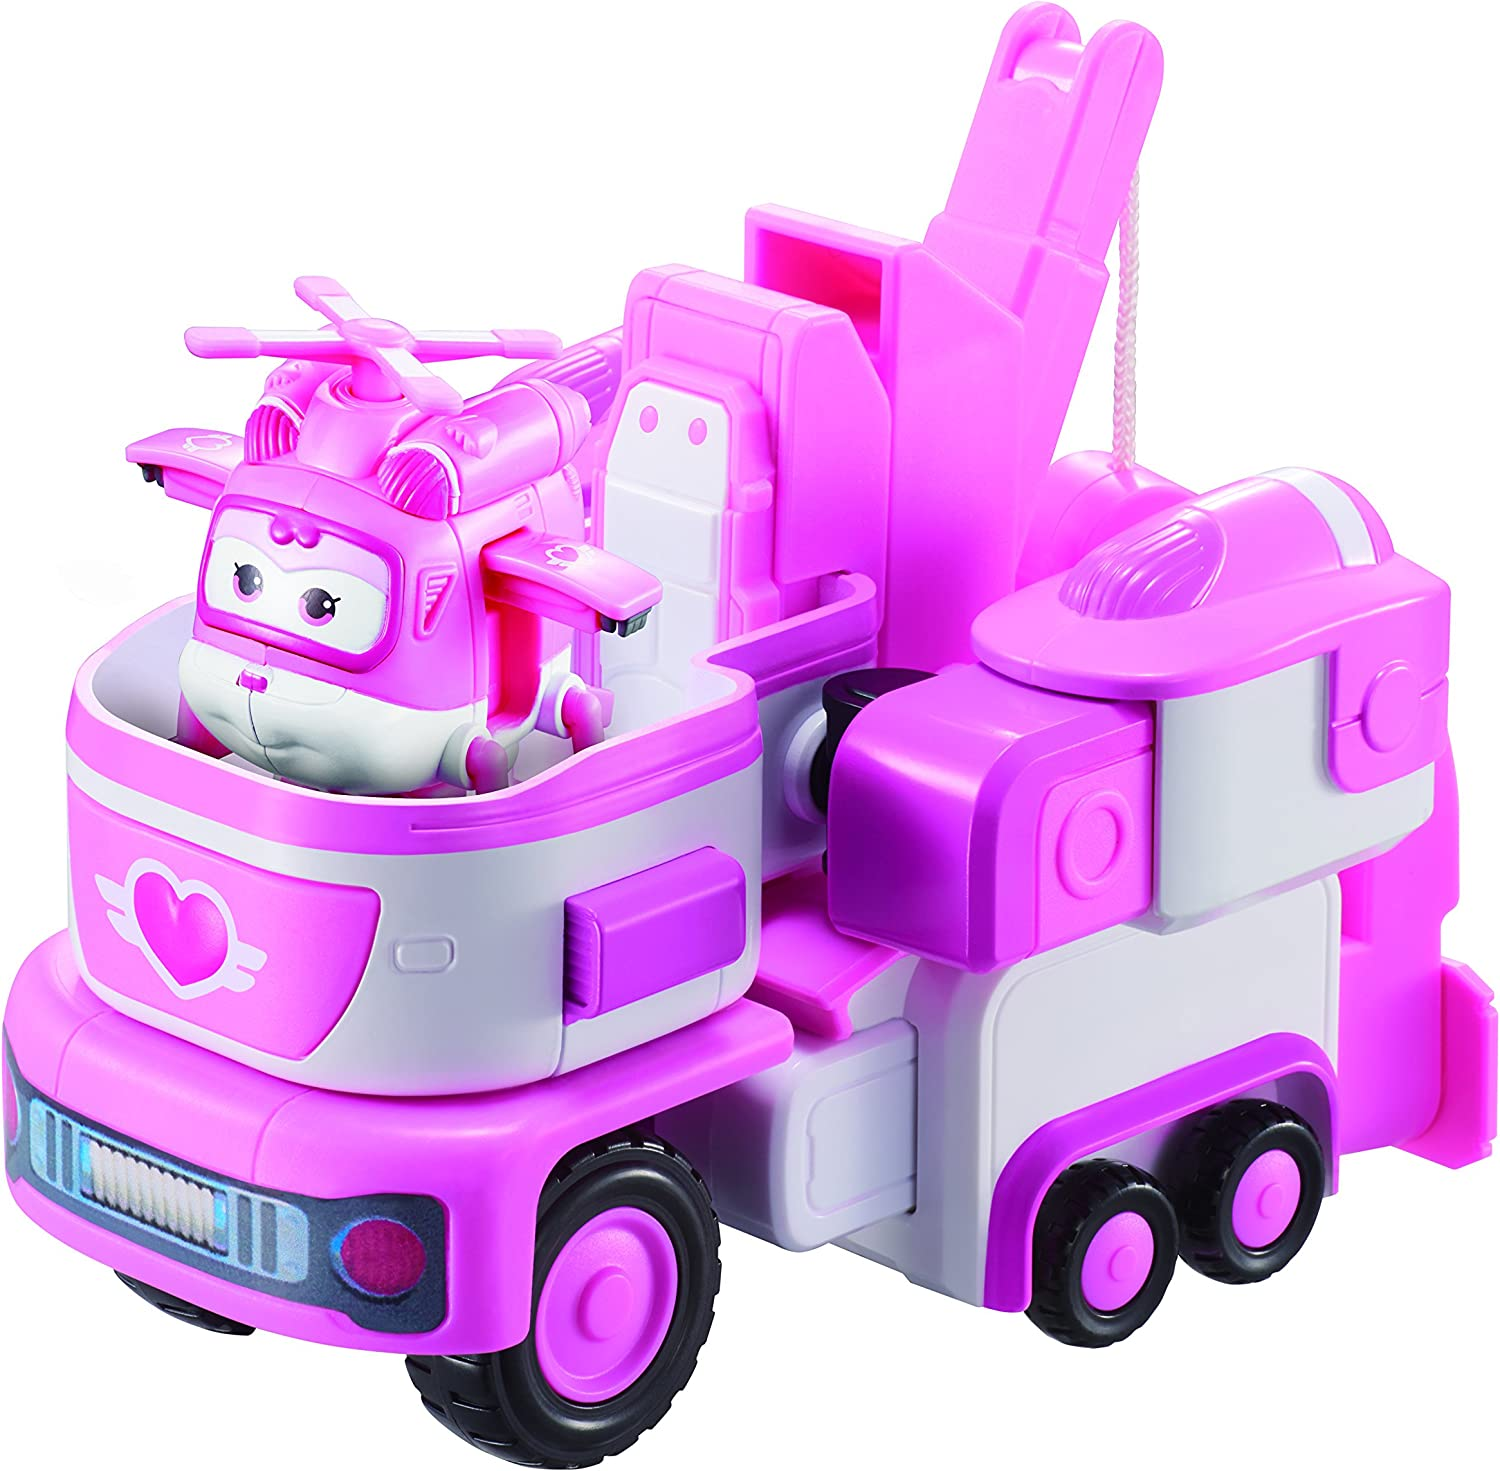 "Super Wings - DIZZY Super Robot Suit Large Transforming Vehicle (For Use With 5"" Figures) + Figure: Amazon.es: Juguetes y juegos"